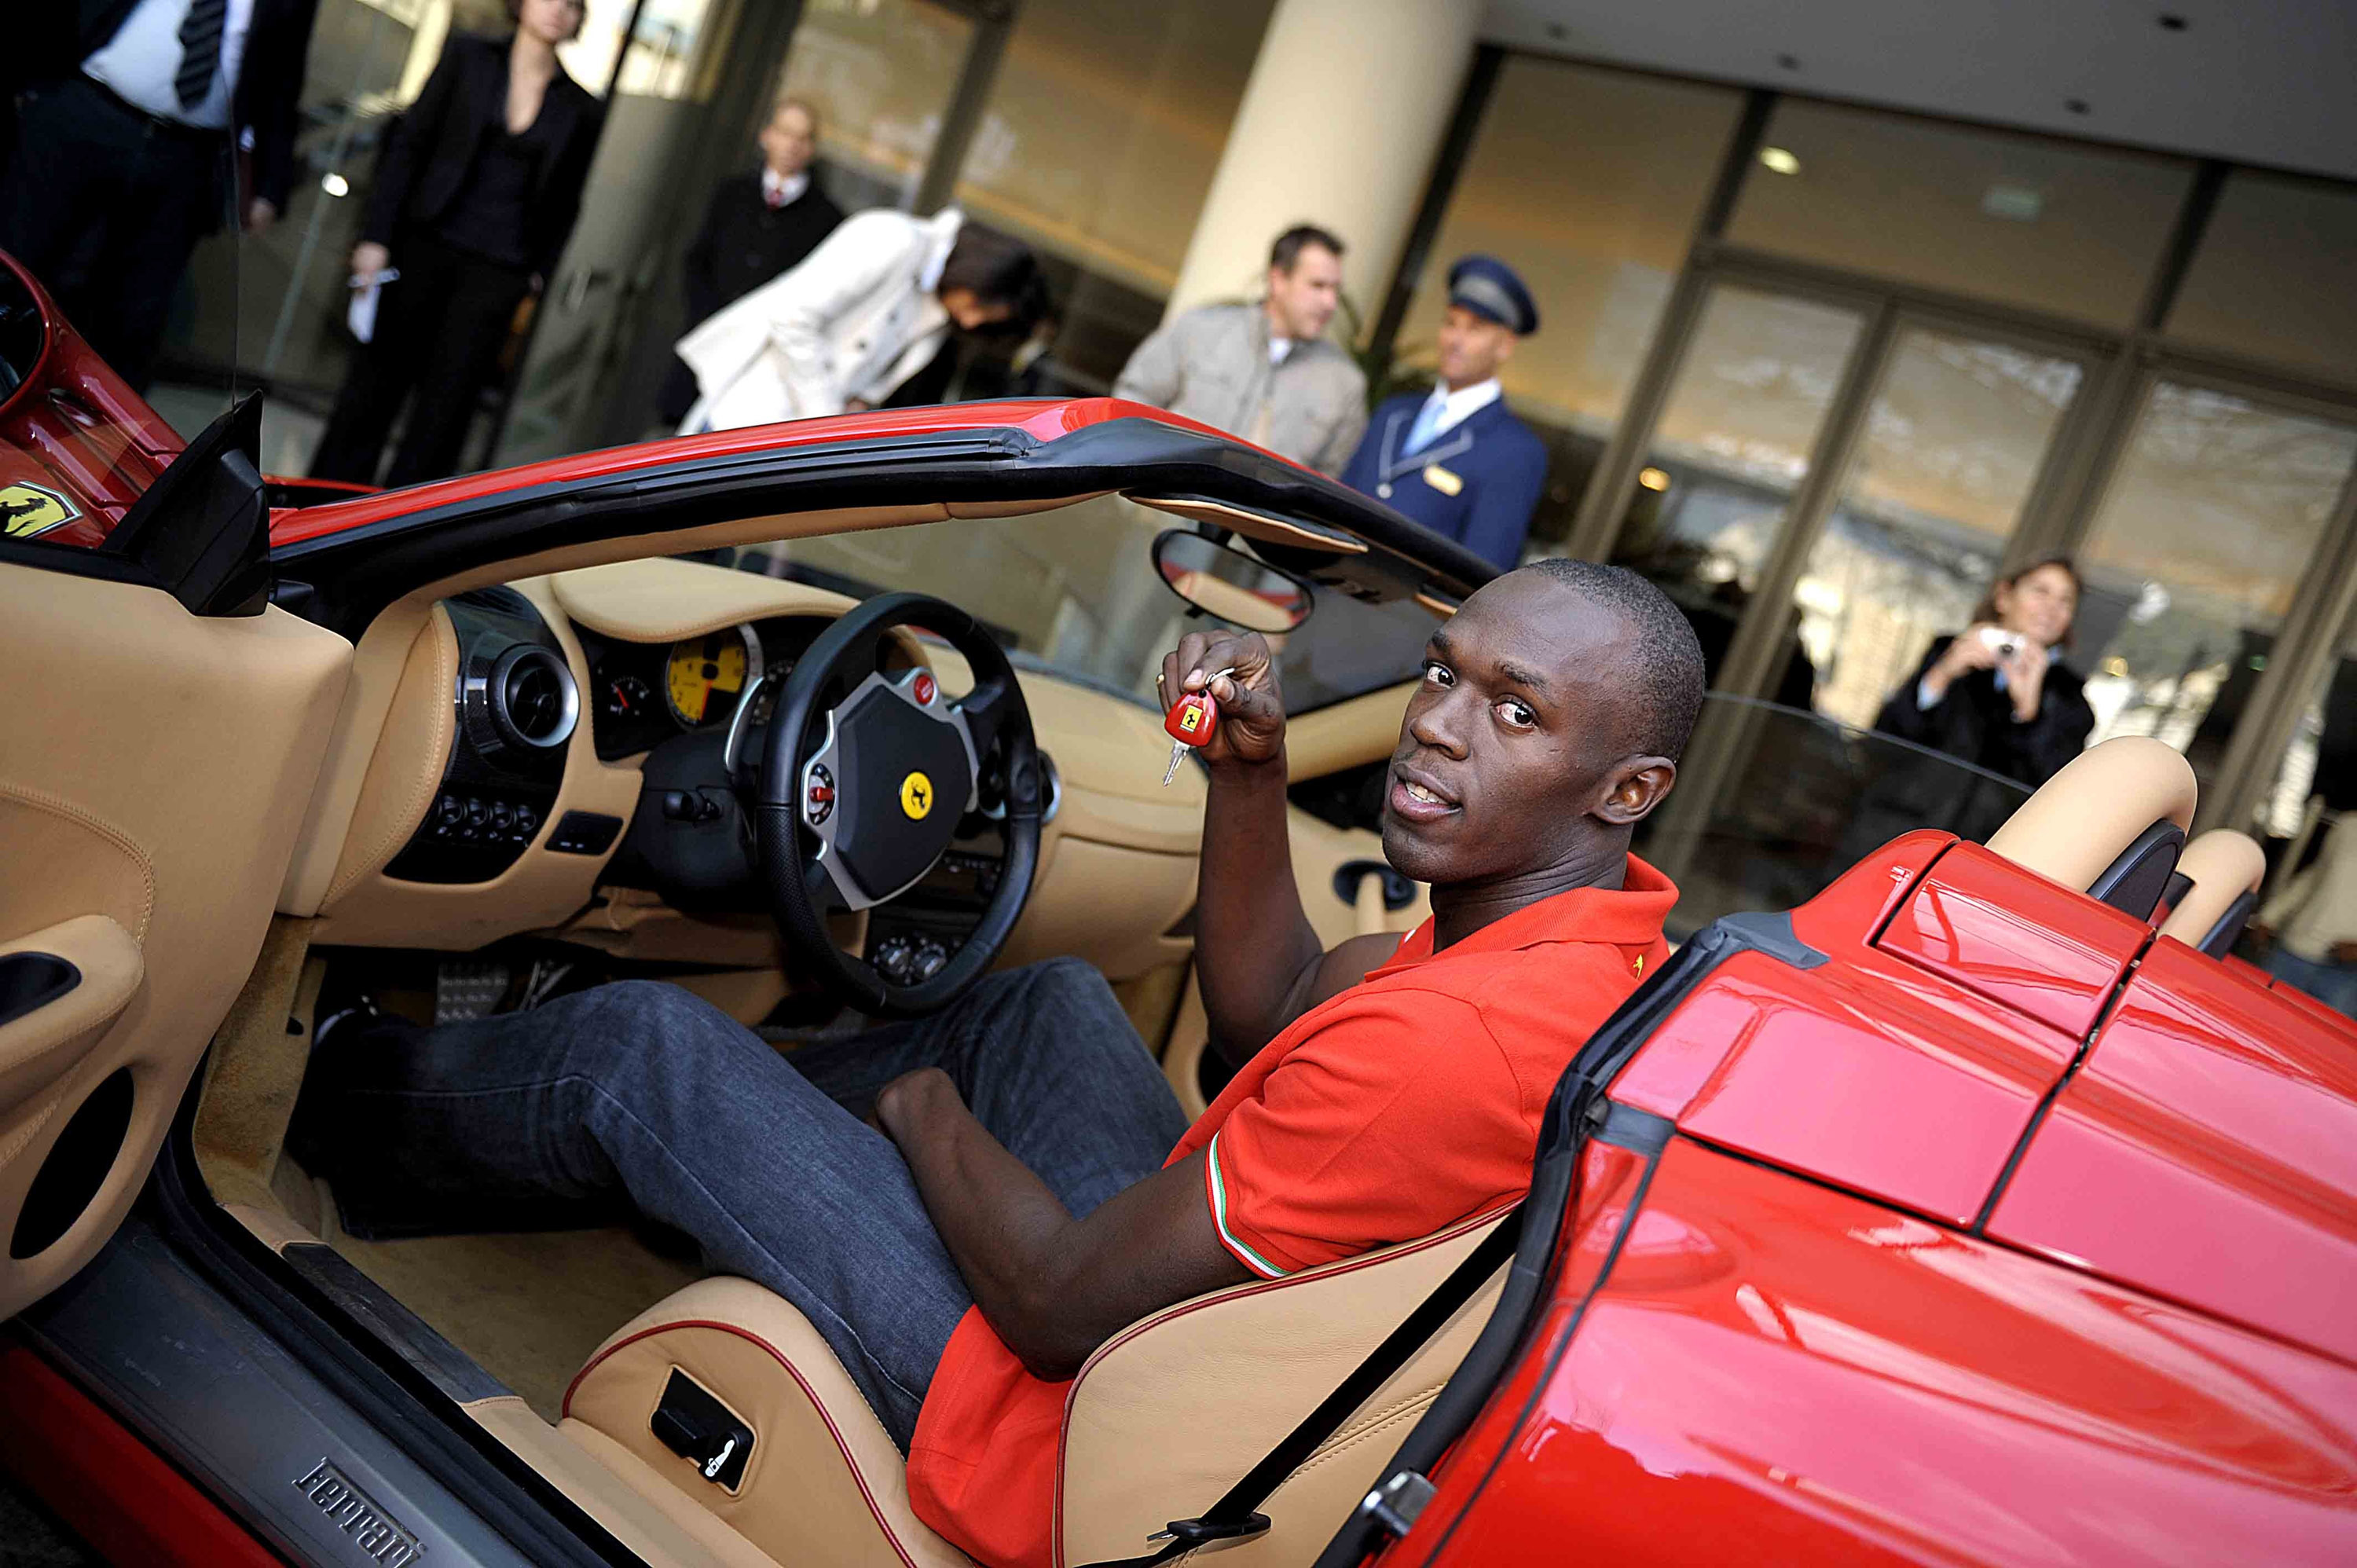 Usain Bolt in Ferrari F430 Spider - Picture 11115